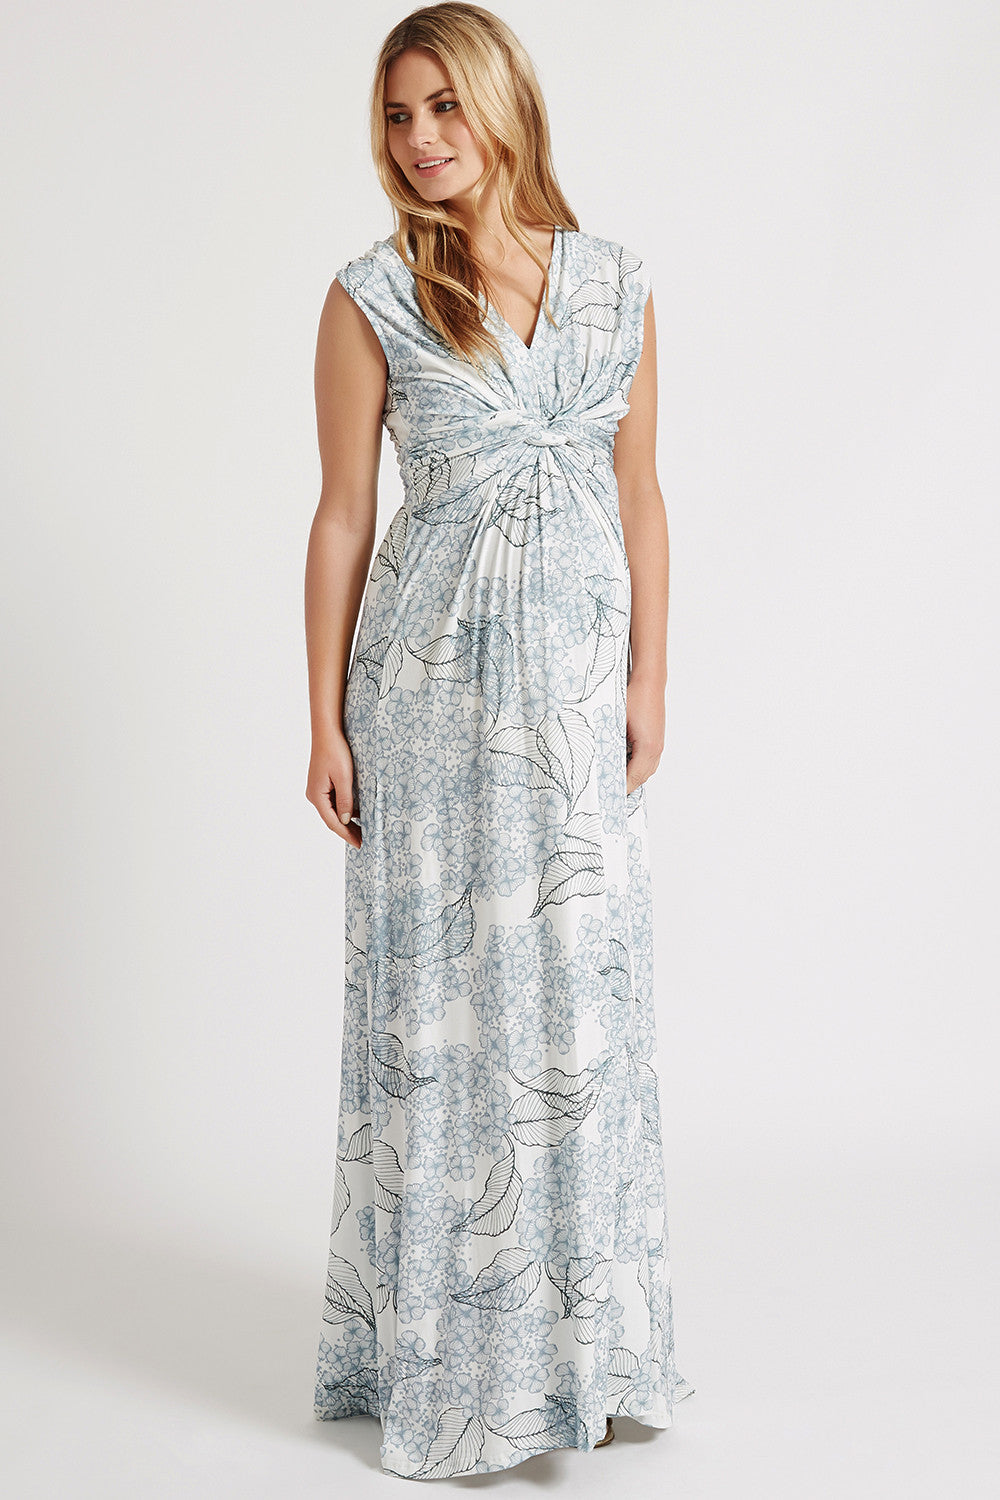 @ Serena Dress - Small - Maternity Sample Sale - Madderson London